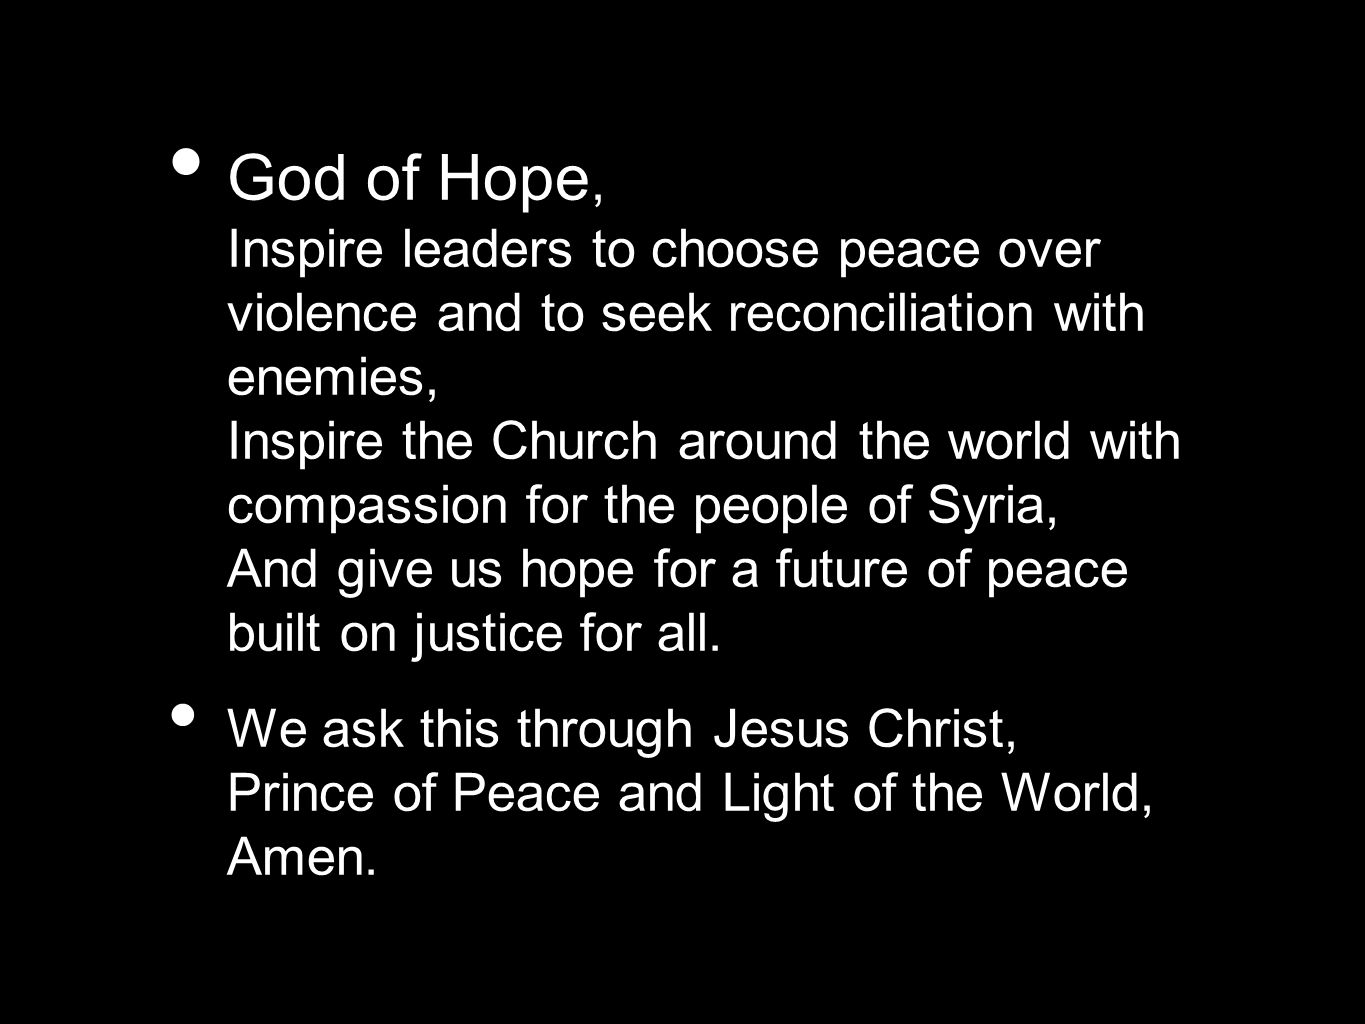 God of Hope, Inspire leaders to choose peace over violence and to seek reconciliation with enemies, Inspire the Church around the world with compassio